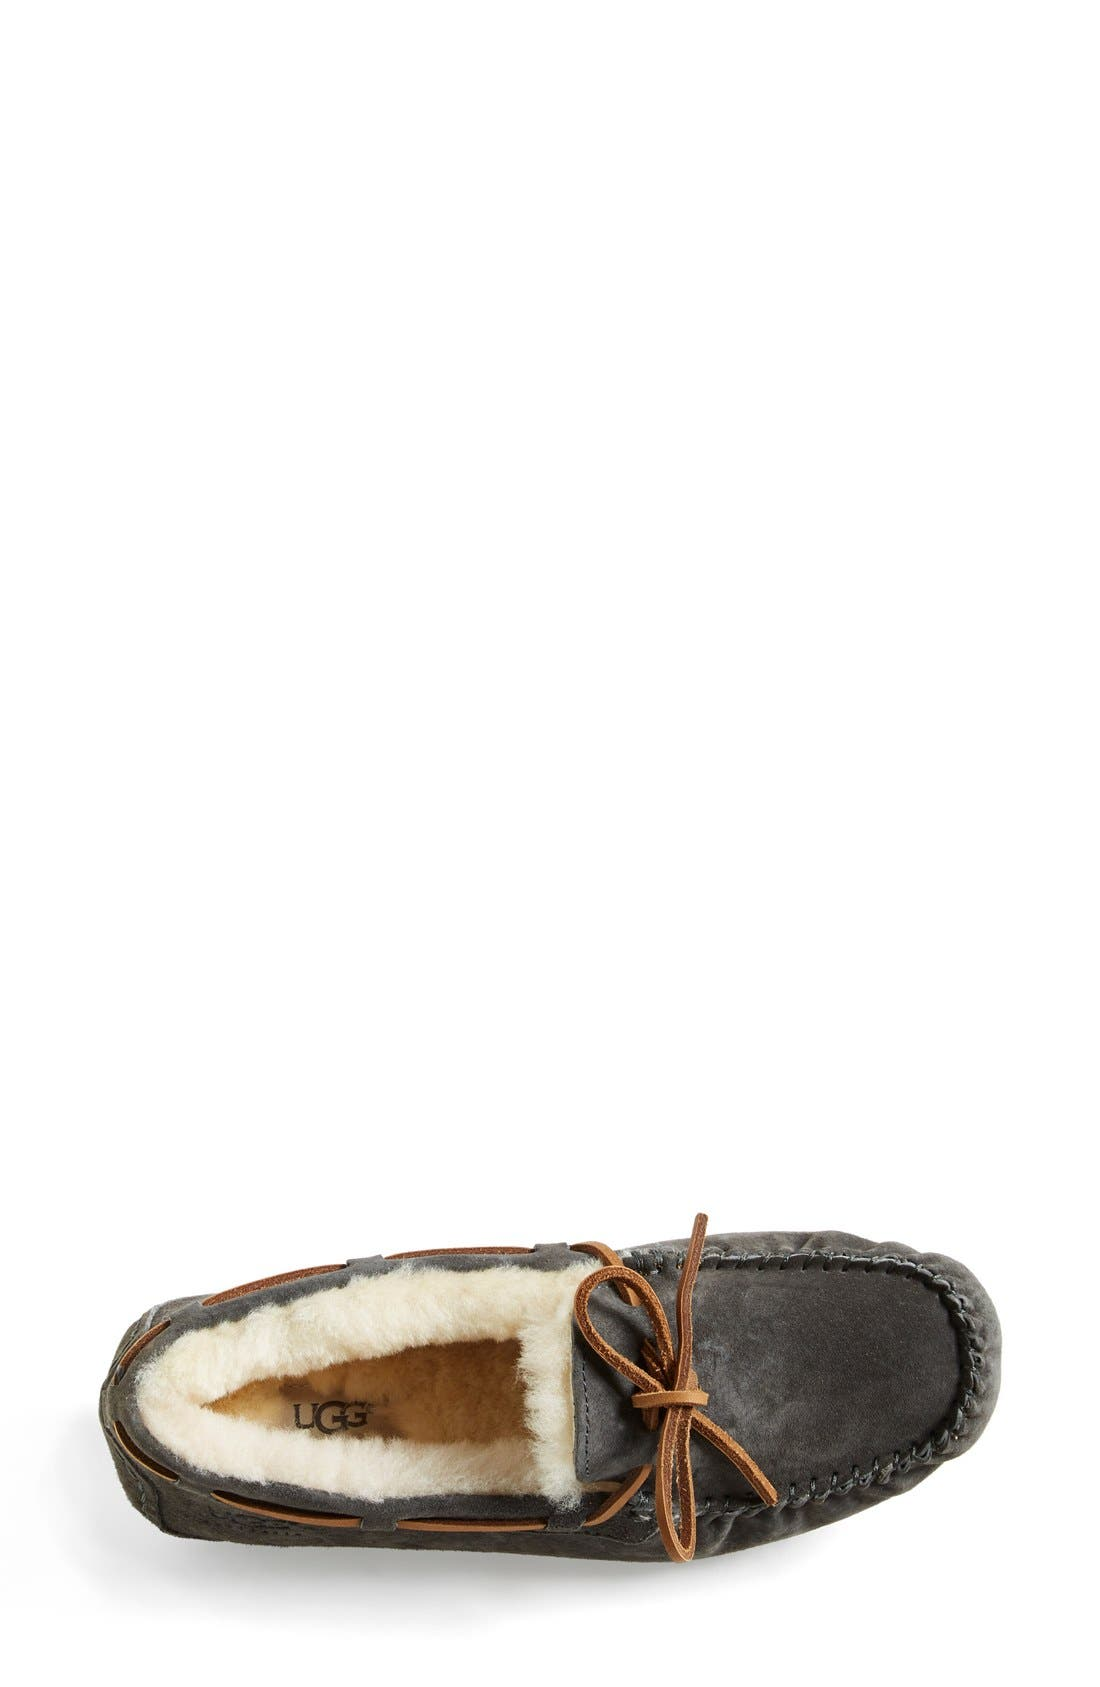 Alternate Image 3  - UGG® Dakota Slipper (Women)